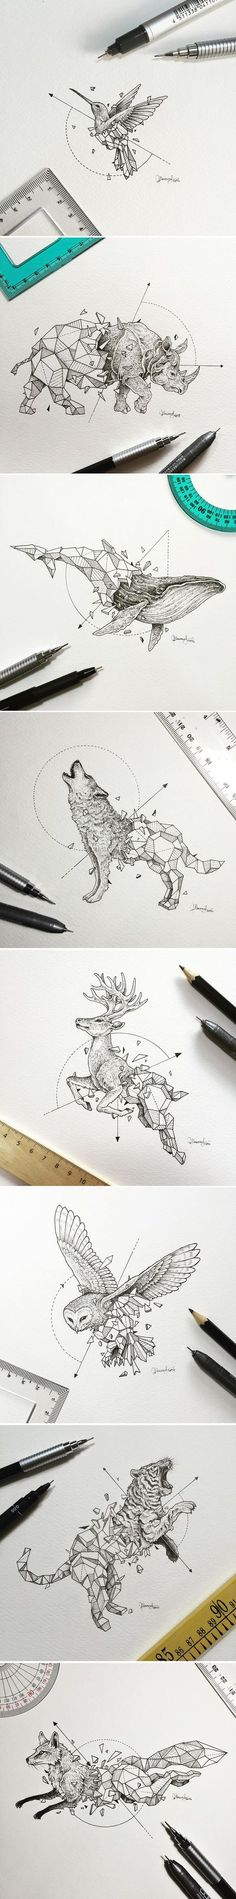 Manila-based illustrator Kerby Rosanes known as Sketchy Stories has created a new series of sketches combing animals with geometric forms. These geometric animals are amazing! Drawn Art, Tattoo Motive, Geometric Art, Geometric Animal, Geometric Drawing, Geometric Elephant Tattoo, Geometric Origami, Diy Origami, Geometric Designs